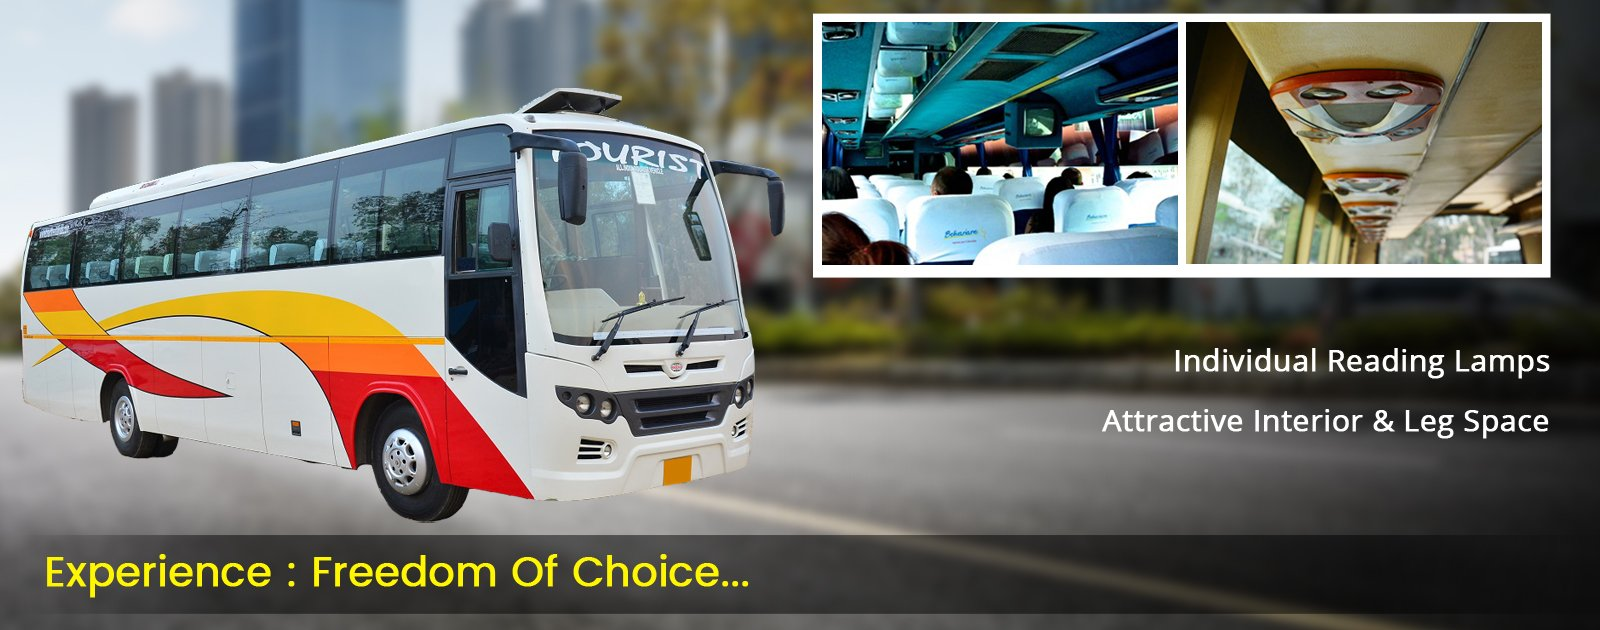 luxury coach in delhi ncr, luxury bus service in new delhi, luxury coach hire in delhi